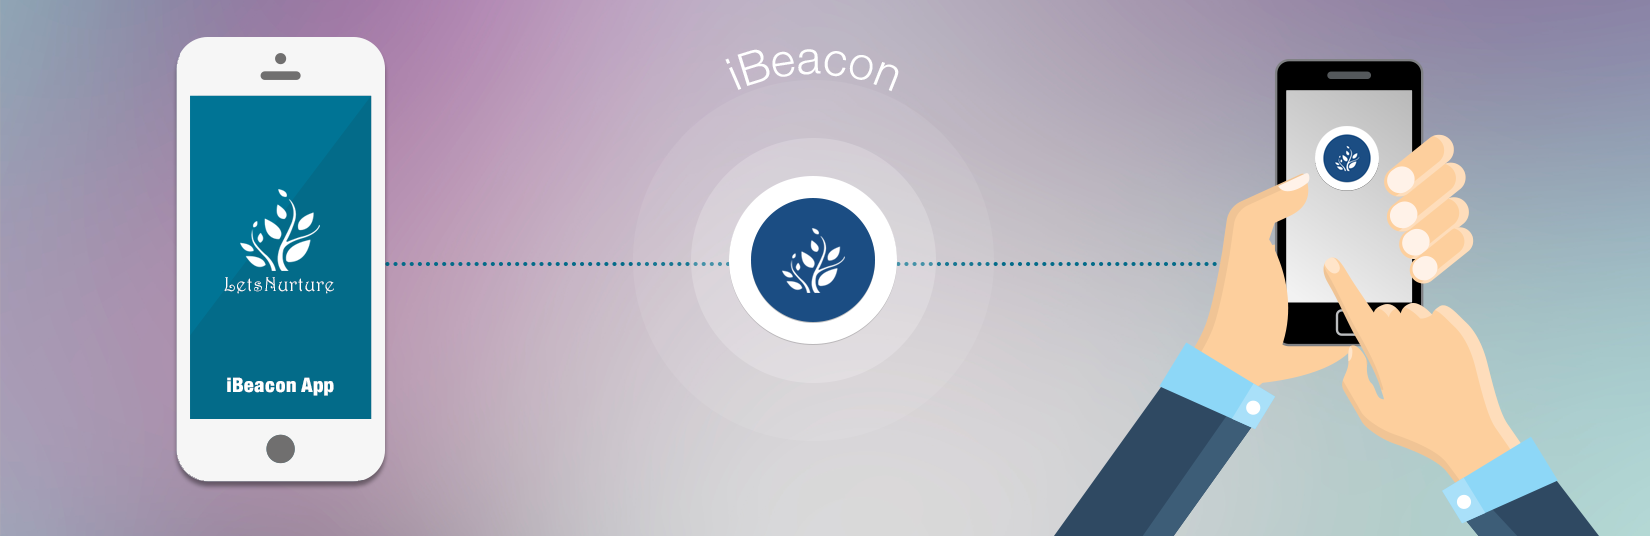 Proximity based marketing solutions using ibeacon technology